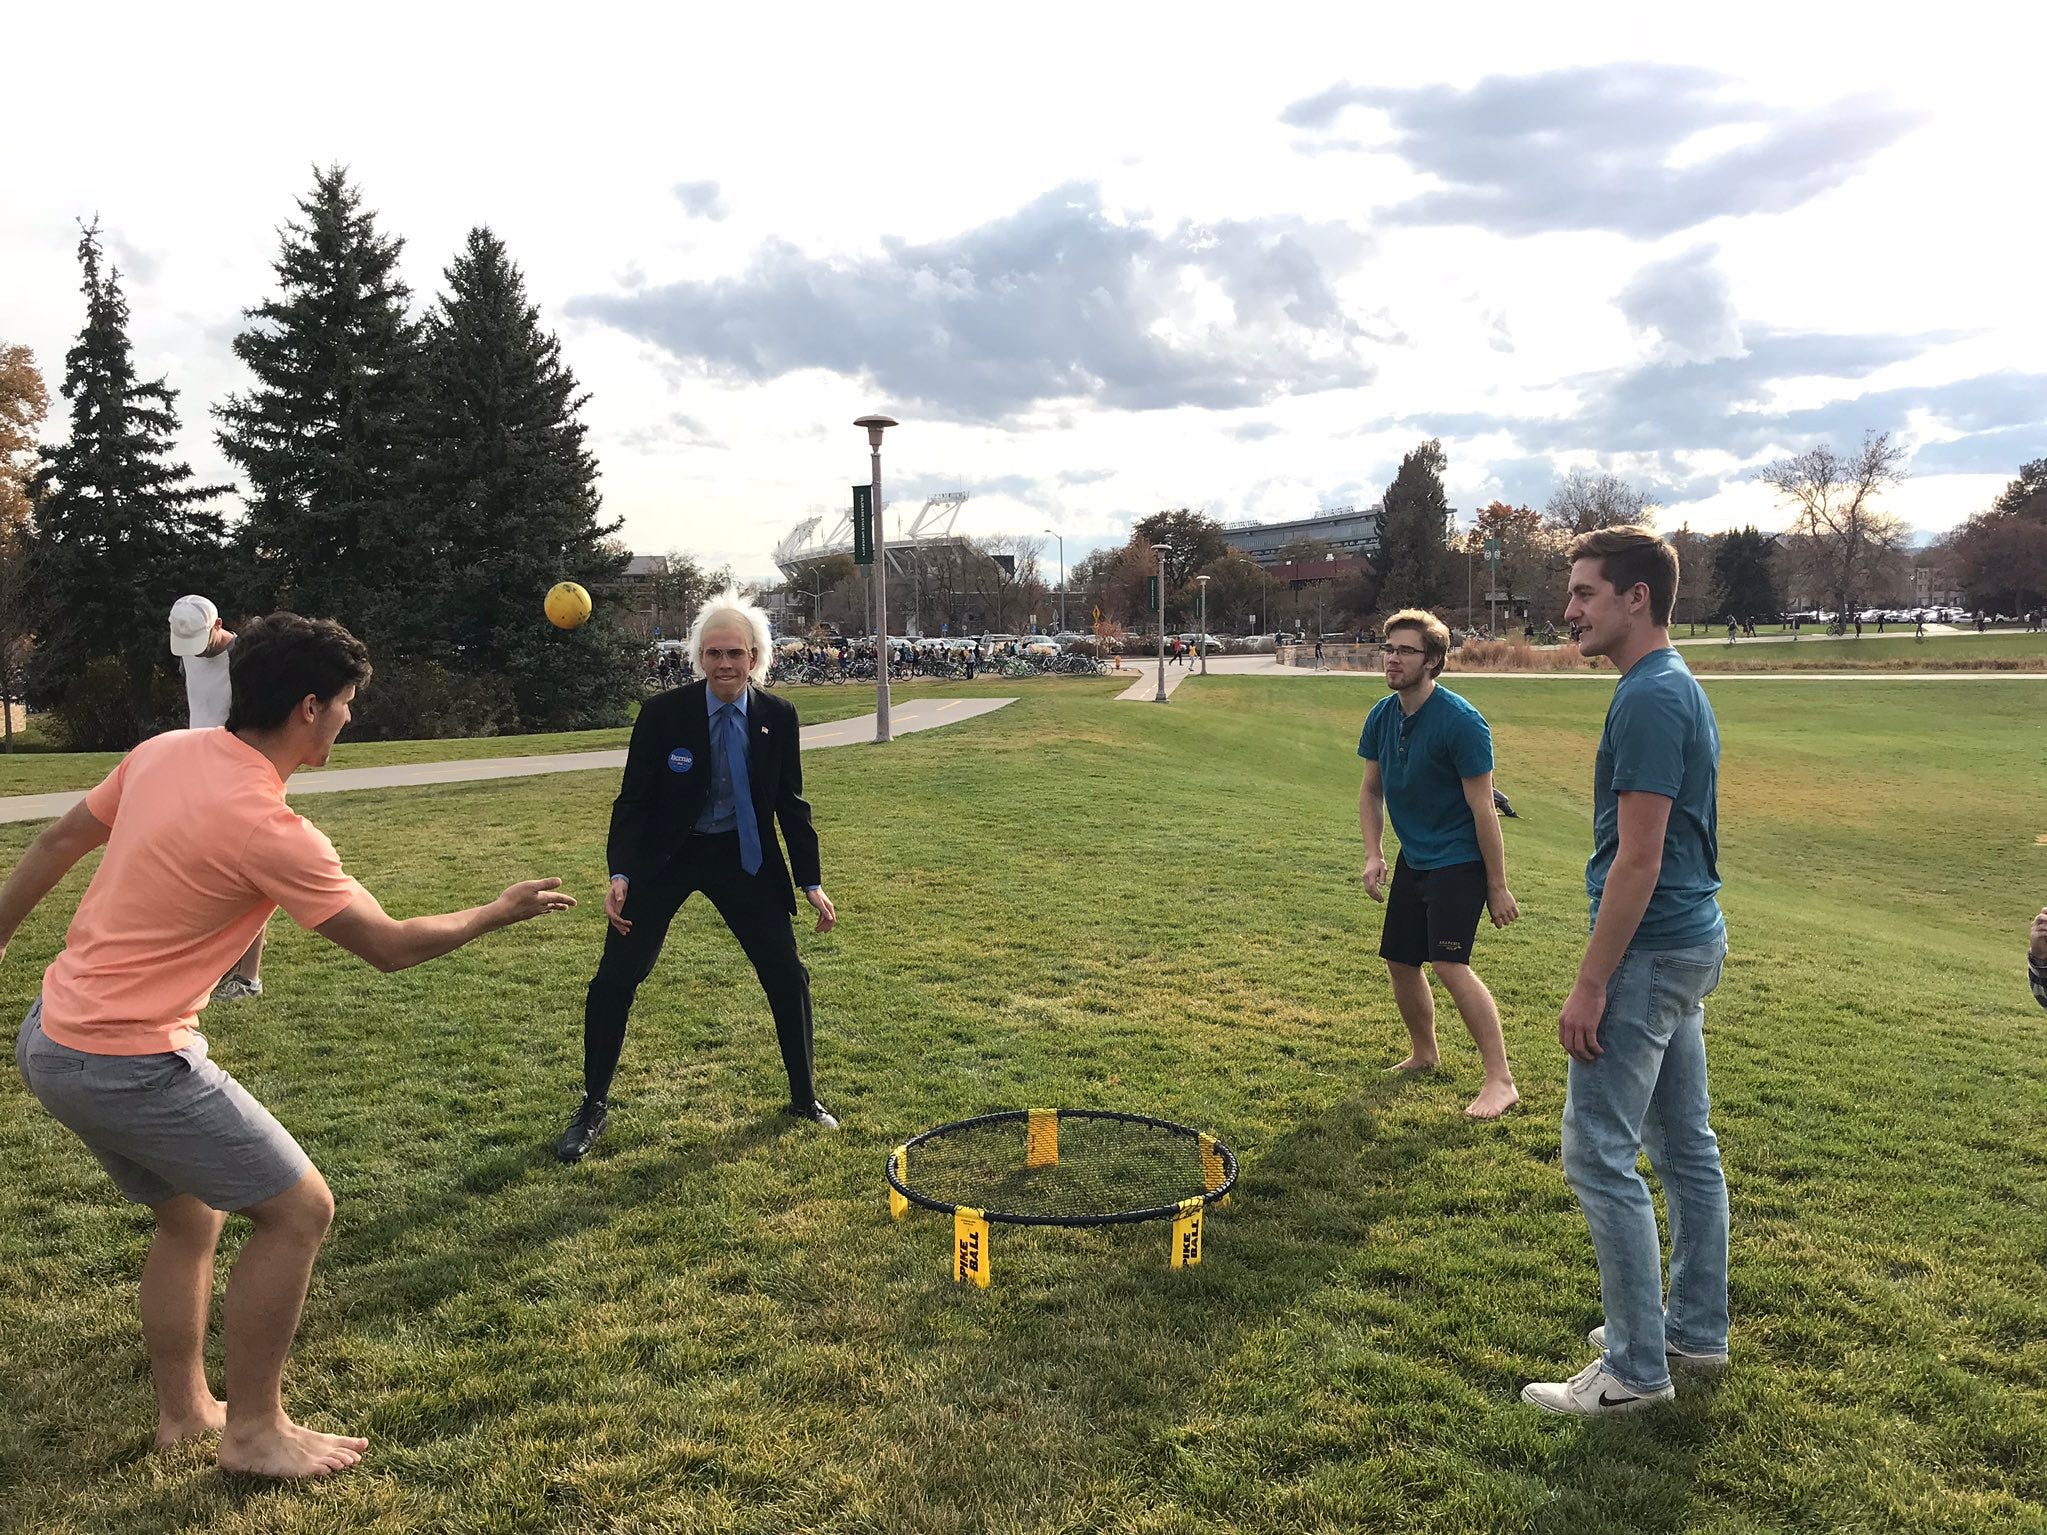 A person dressed like Sen. Bernie Sanders plays a game of pike ball with others on the CSU campus Wednesday, the day of a political rally featuring the senator.